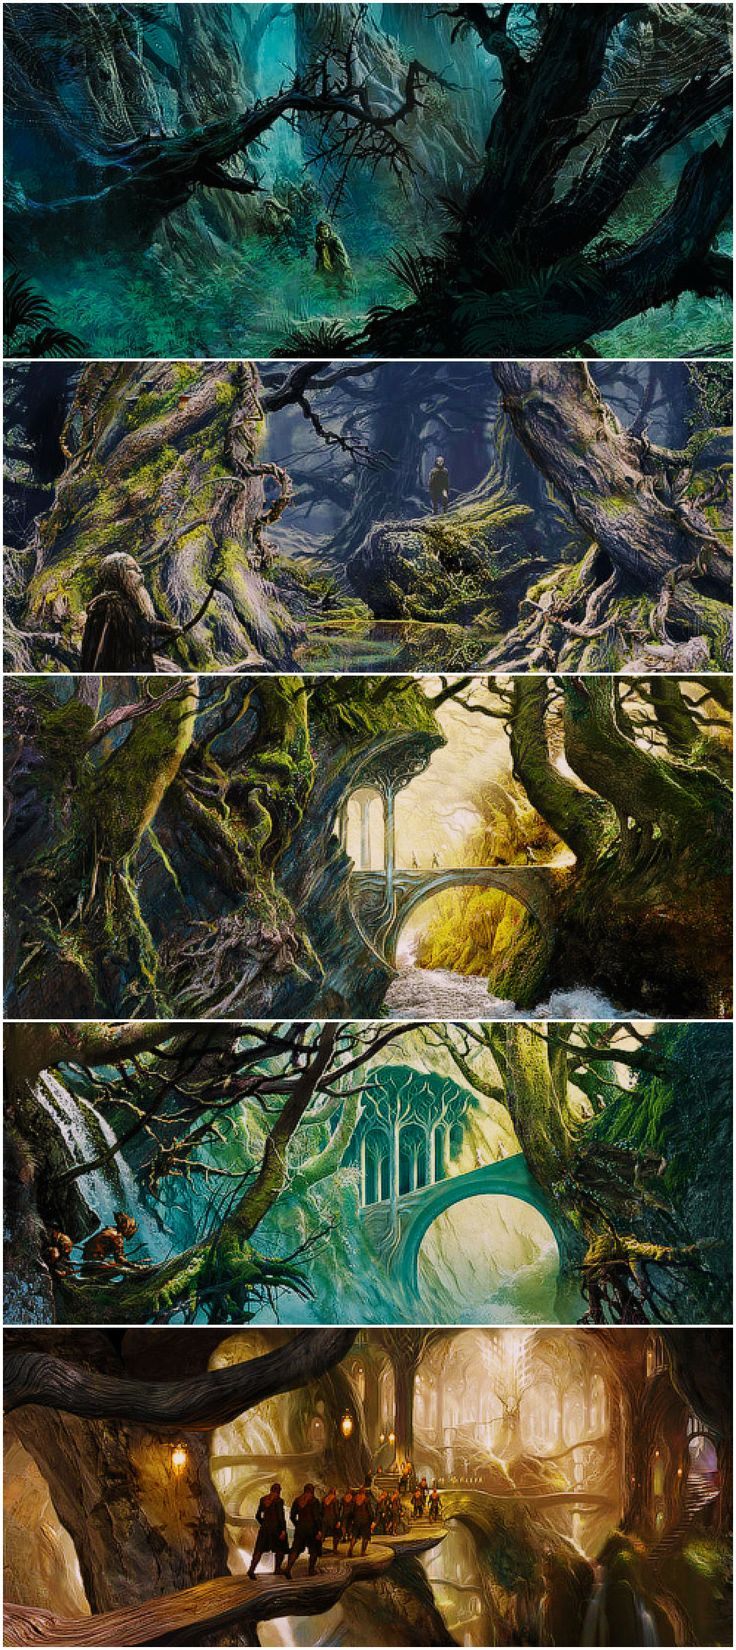 Lord of the Rings: Mirkwood Concept art